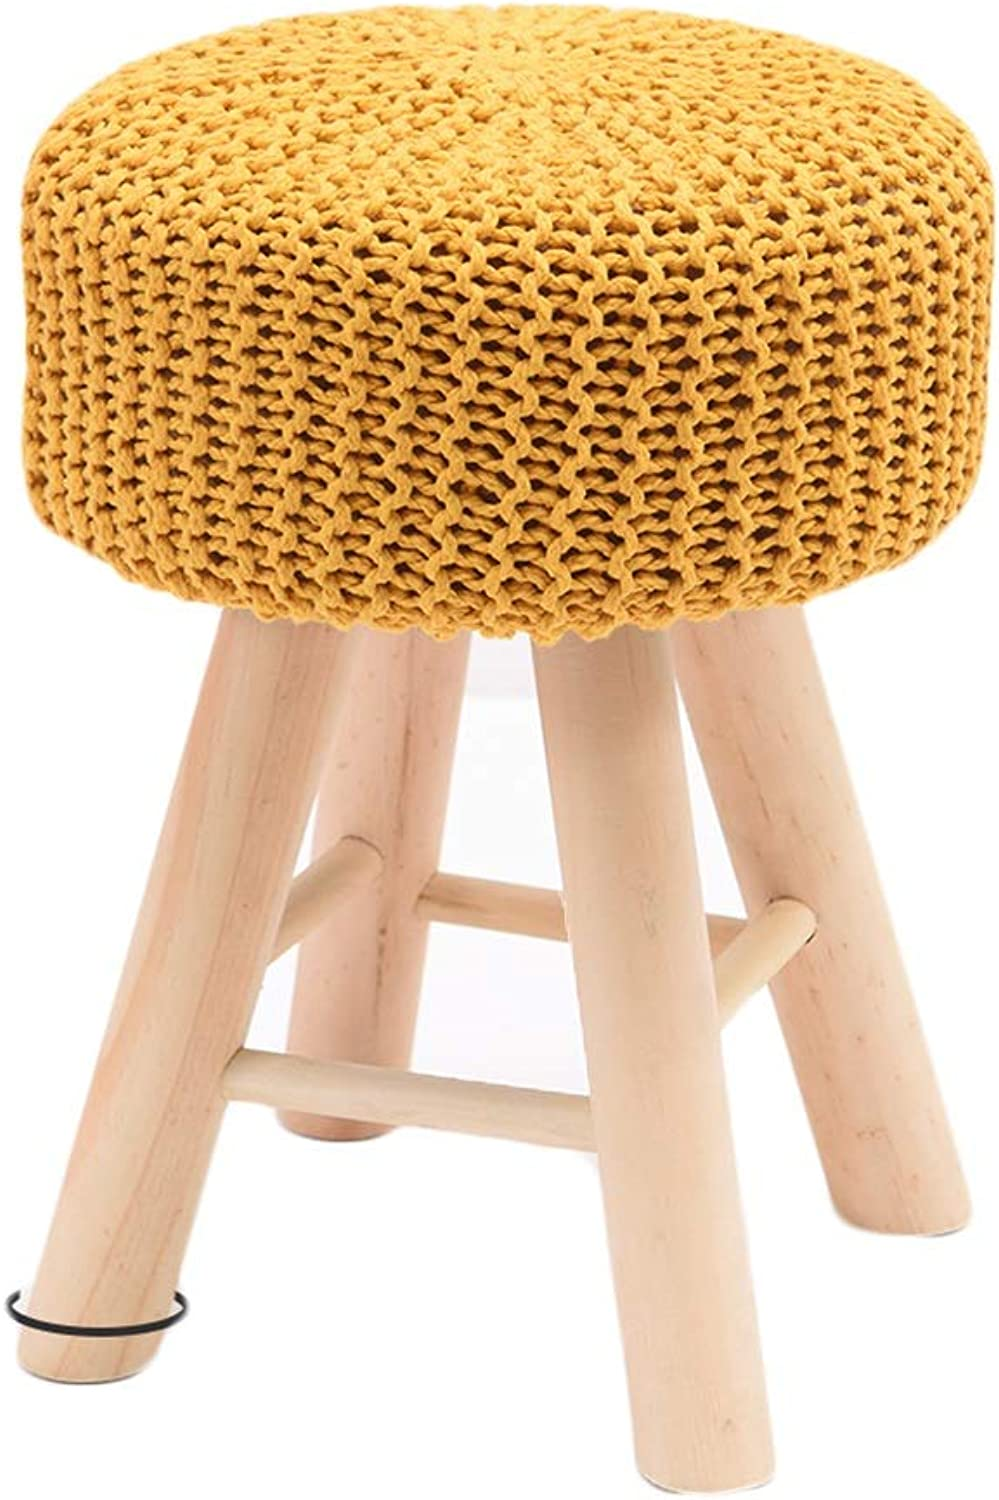 LIXIONG Household Beech Round European Style Triangle Design Sofa Stool, Bearing Weight 75kg, 4 colors (color   Yellow)